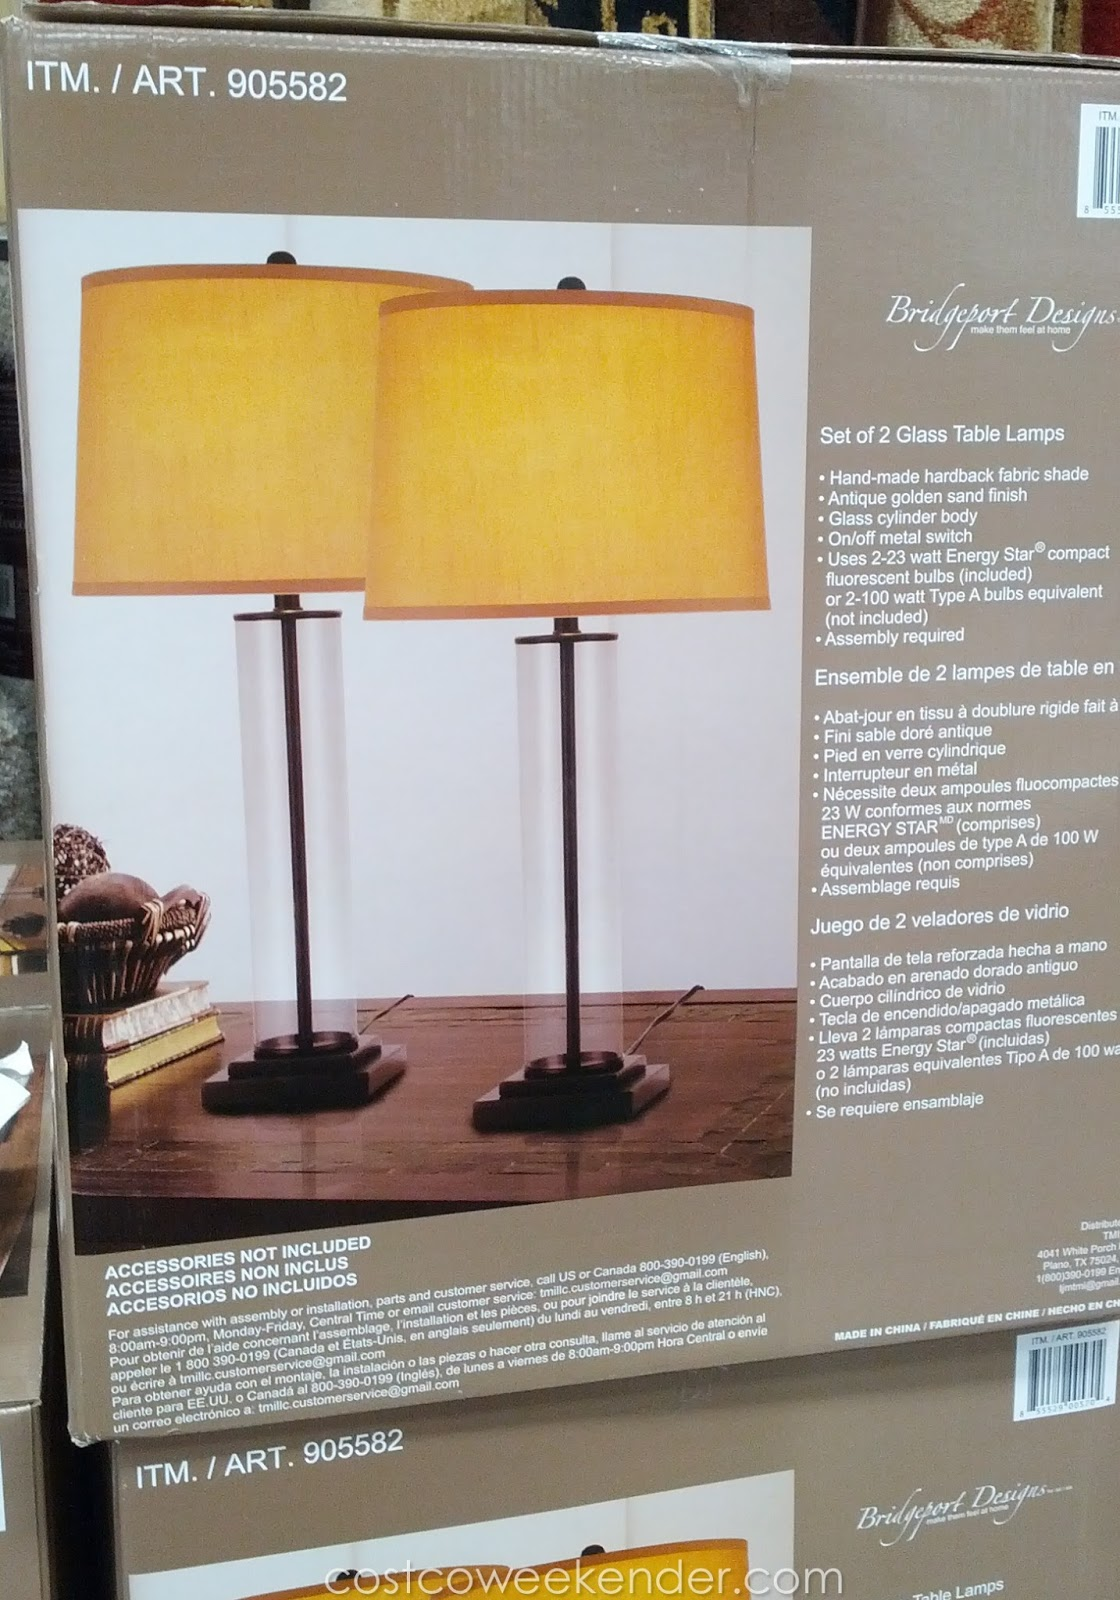 Name:  bridgeport-designs-glass-cylinder-table-lamps-set-of-2-costco.jpg Views: 1355 Size:  313.6 KB